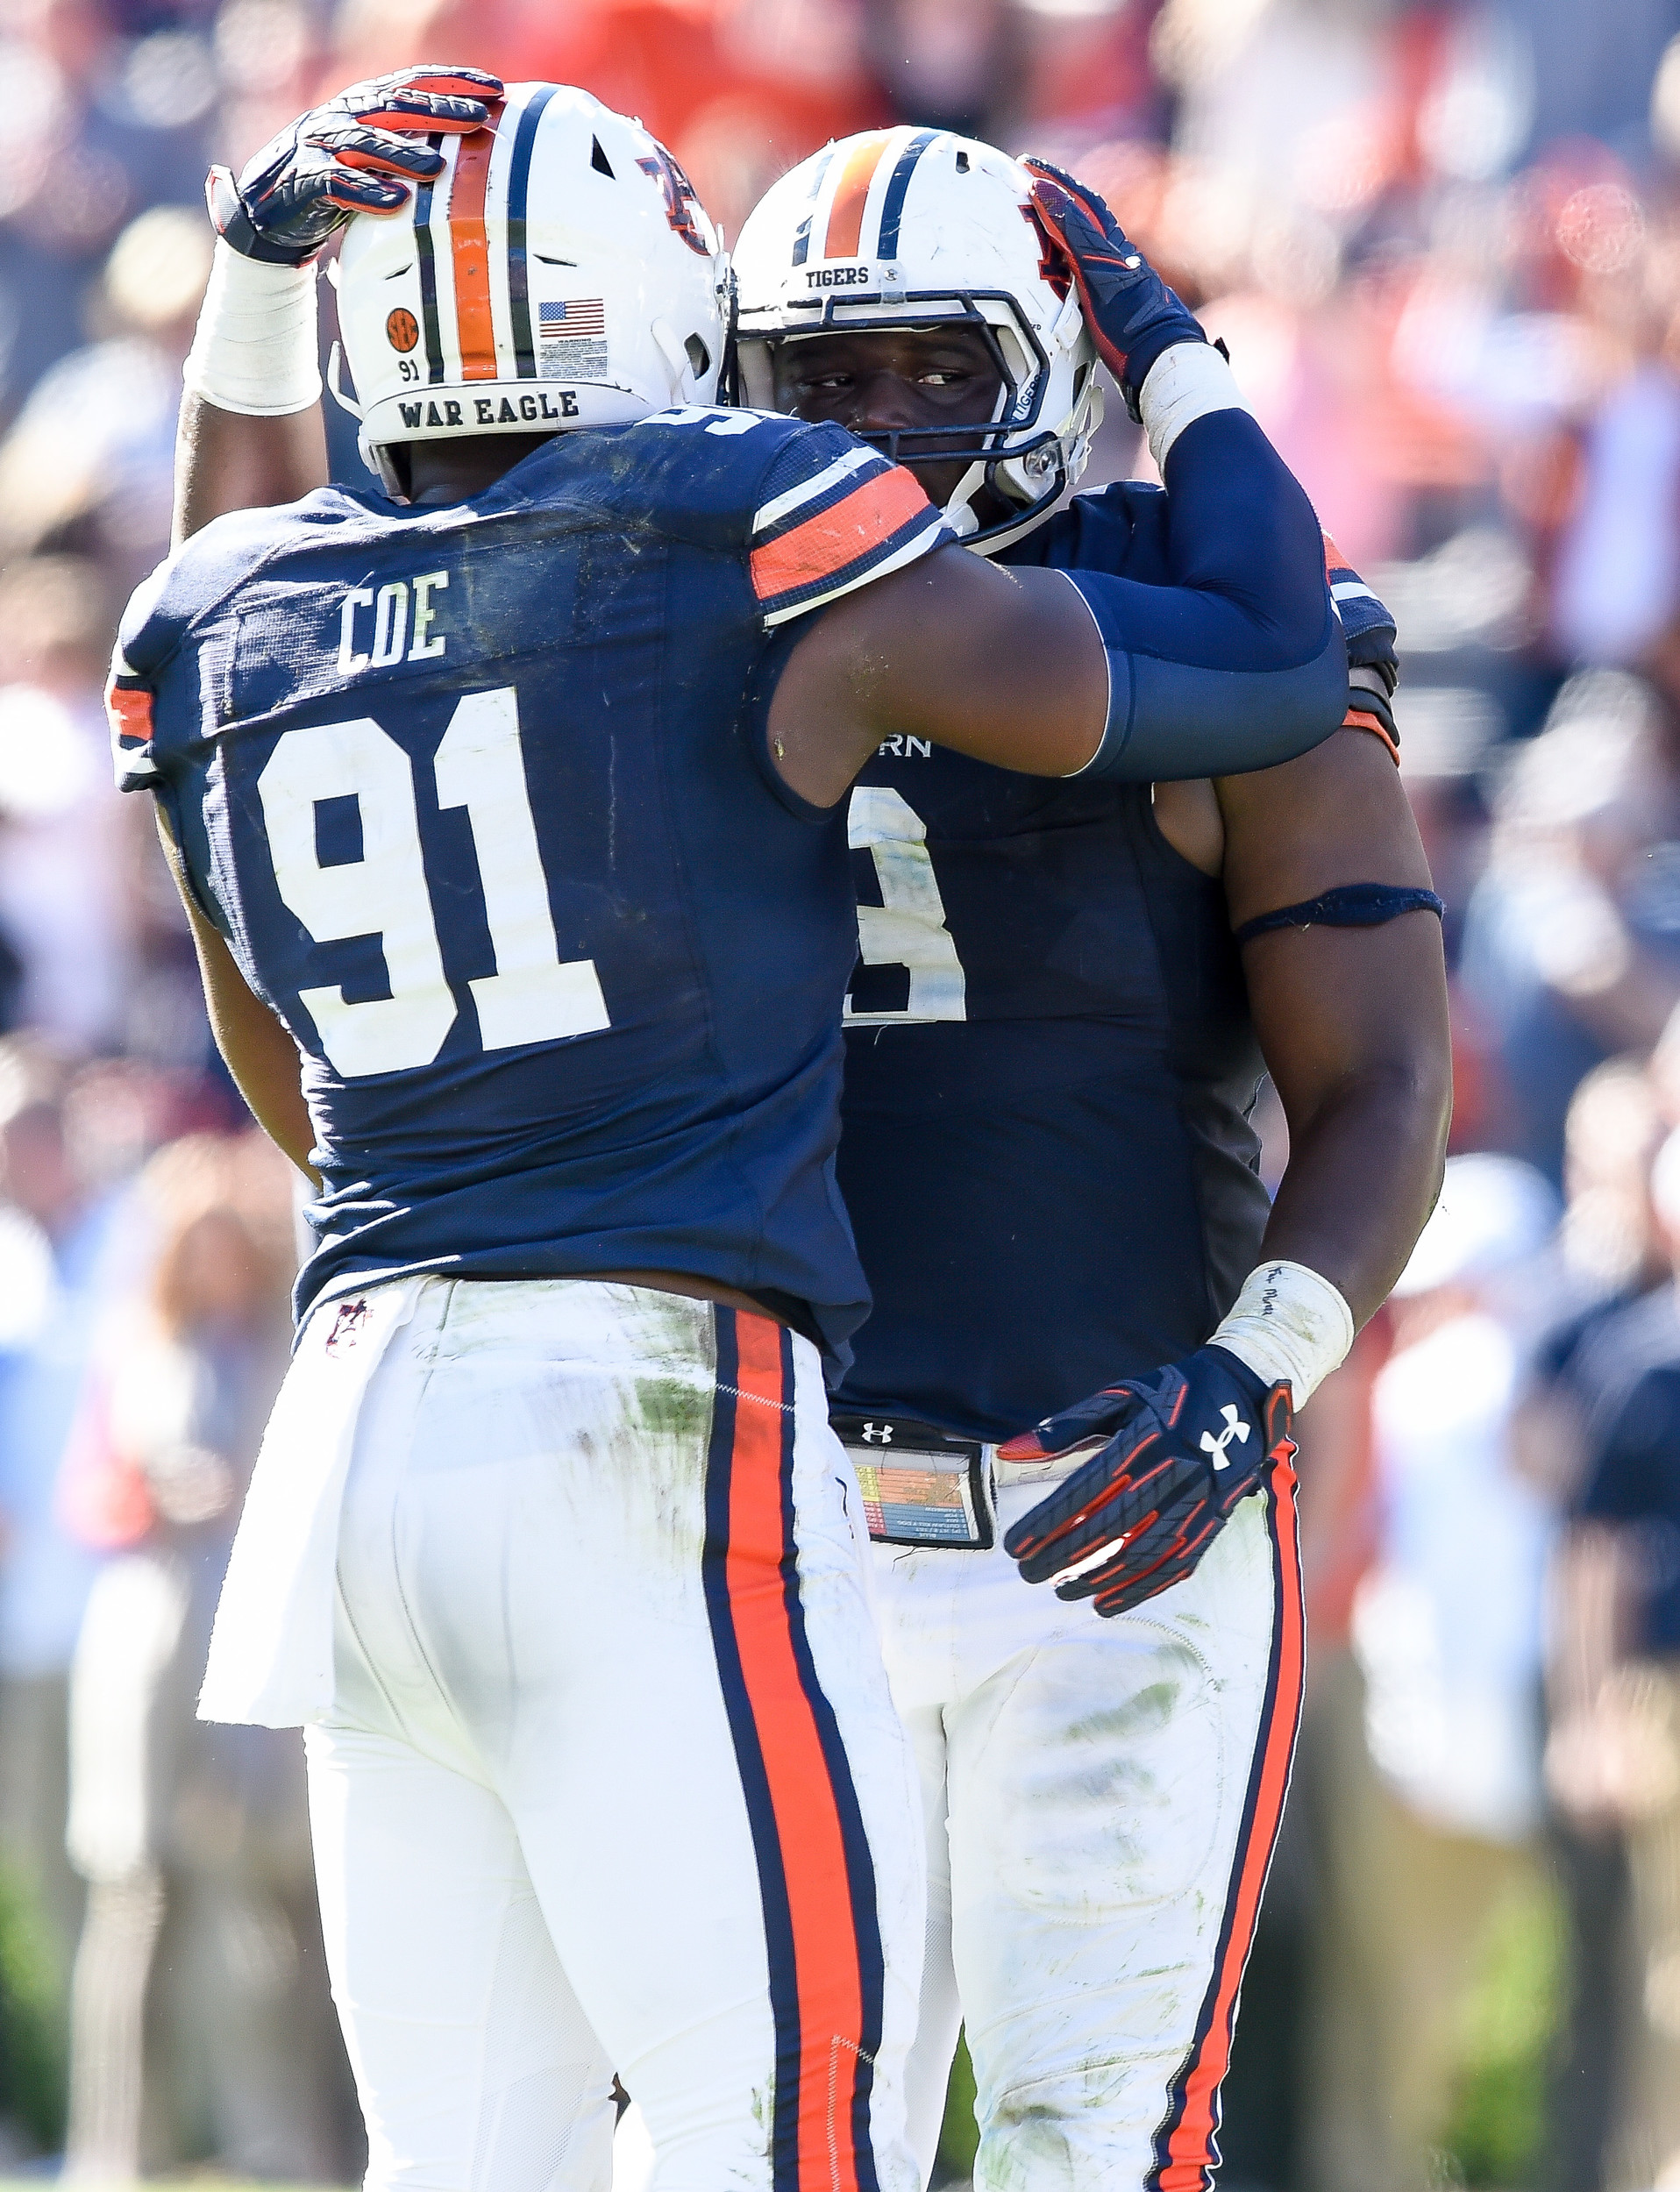 Auburn Tigers defensive lineman Nick Coe (91) and Auburn Tigers defensive lineman Marlon Davidson (3) celebrate as time expires of an NCAA football game against the Texas A&M Aggies Saturday, November 3, 2018, at Jordan-Hare Stadium in Auburn, Ala. (Photo by Jeff Johnsey)